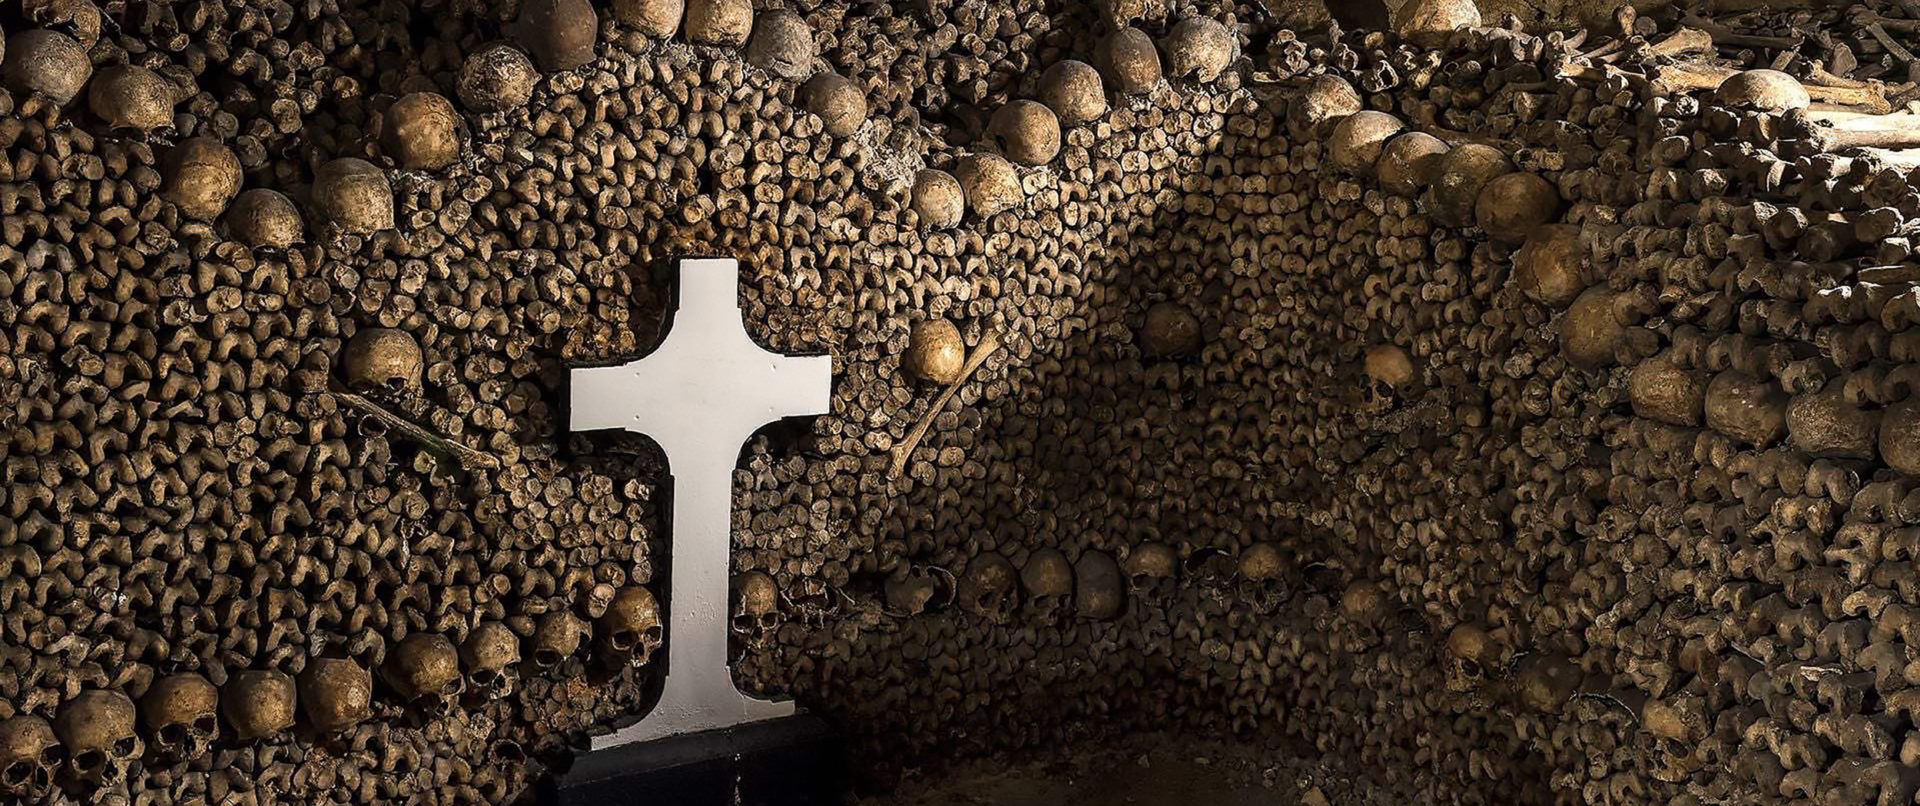 catacombs-paris-tour-bones-skulls